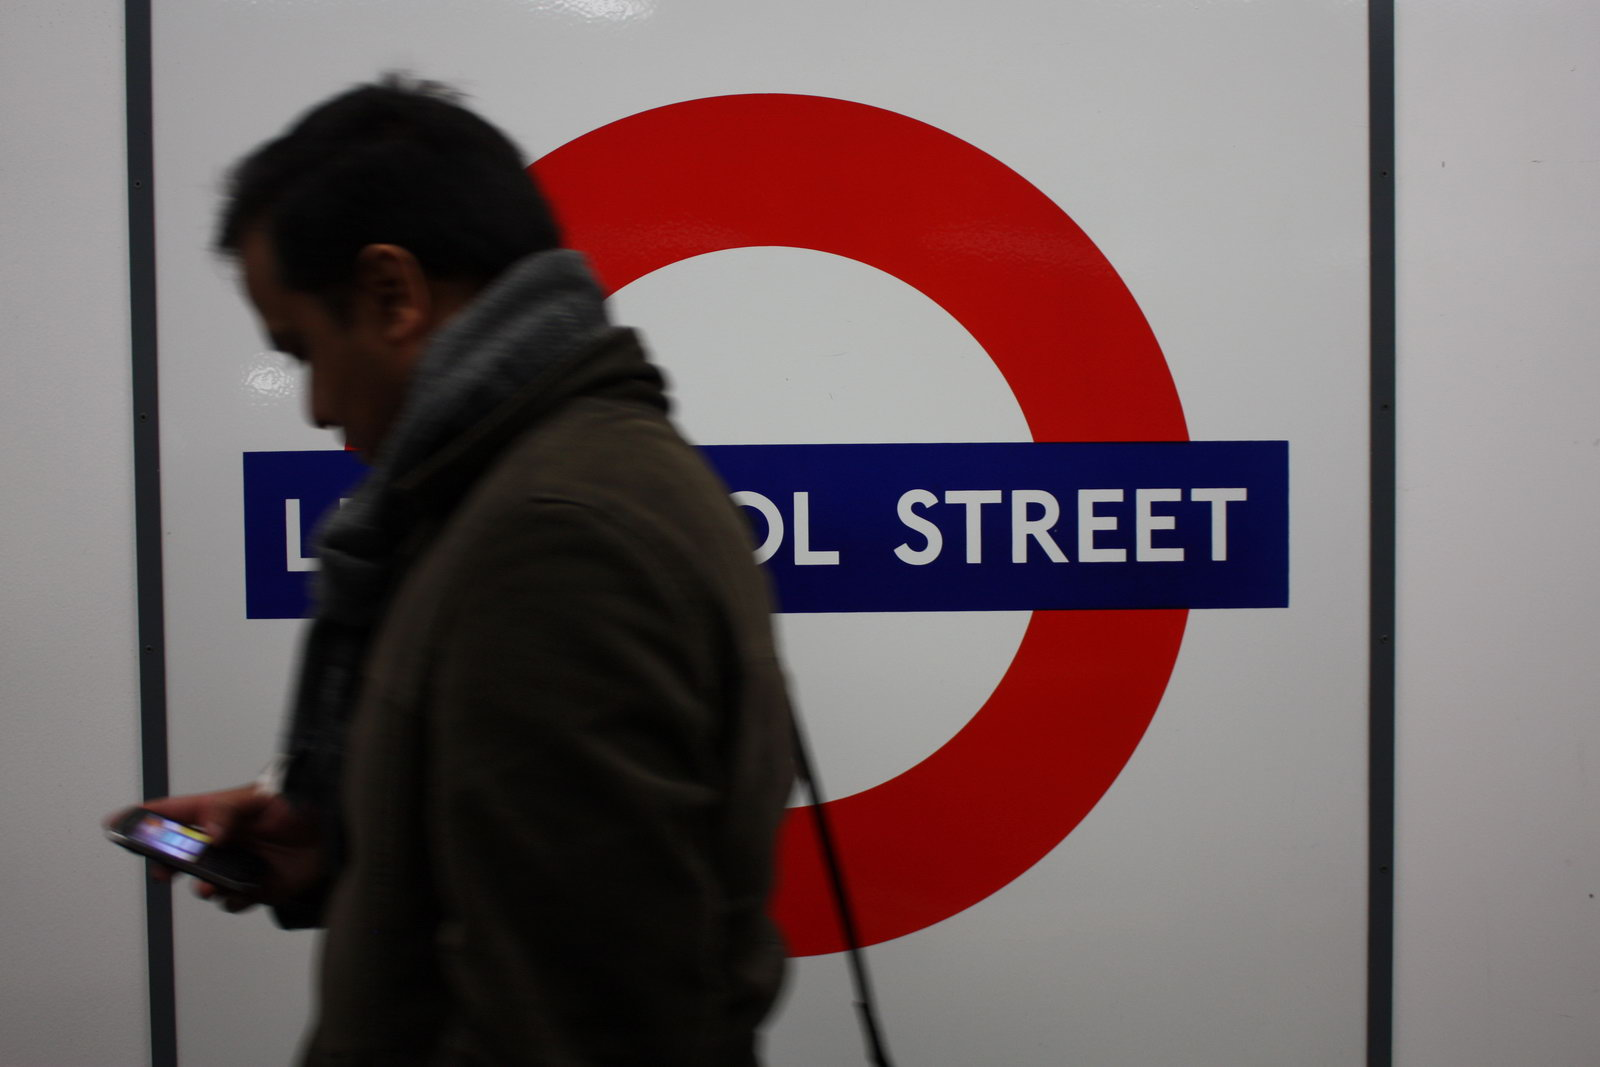 Rush hour in the tube